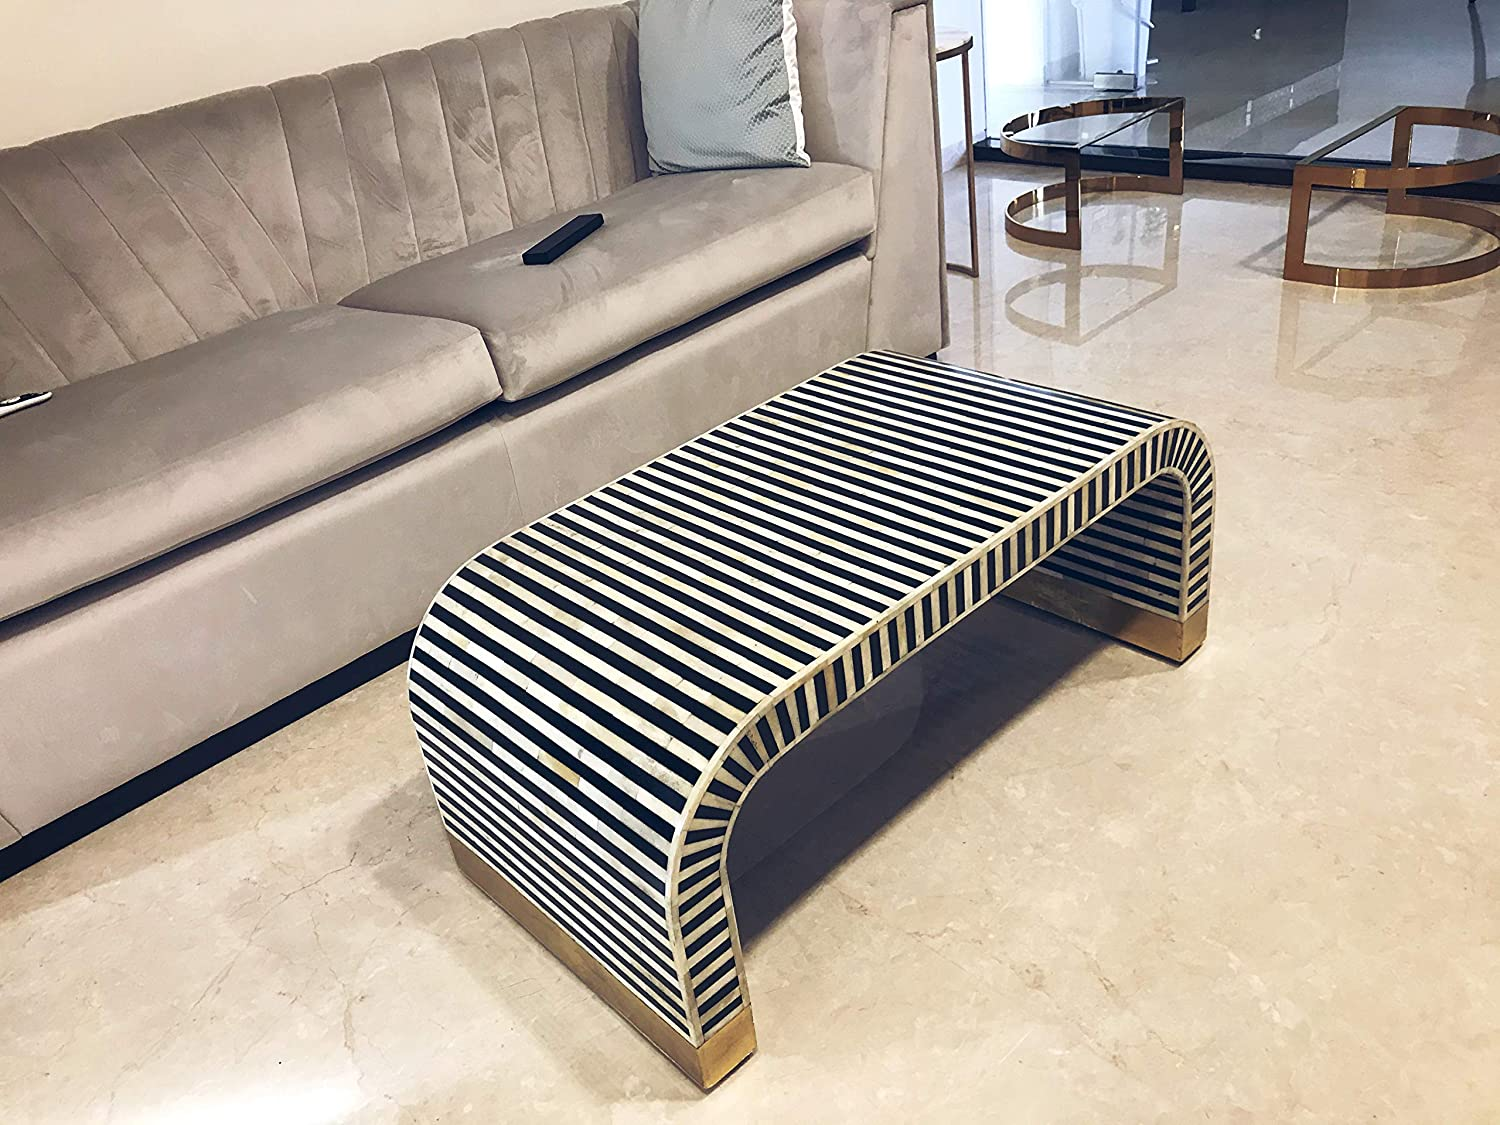 Handcrafted Bone Inlay Coffee Table: Amazon.in: Home & Kitchen